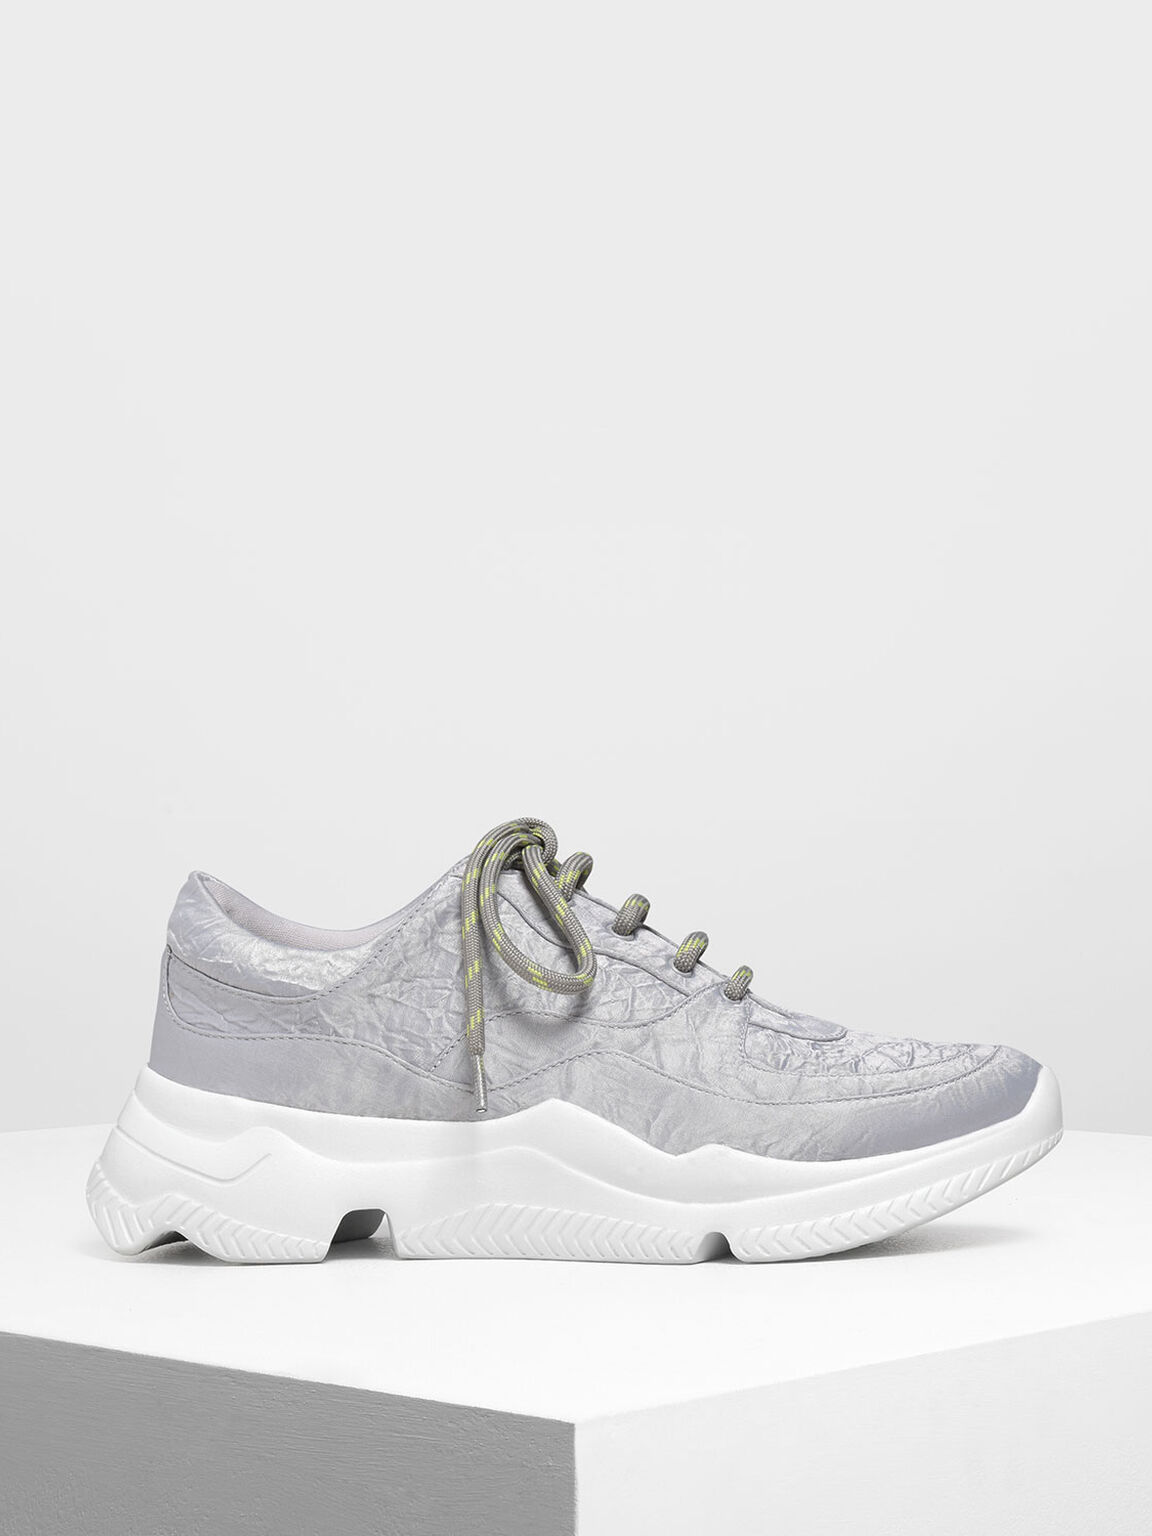 Chunky Sneakers, Silver, hi-res